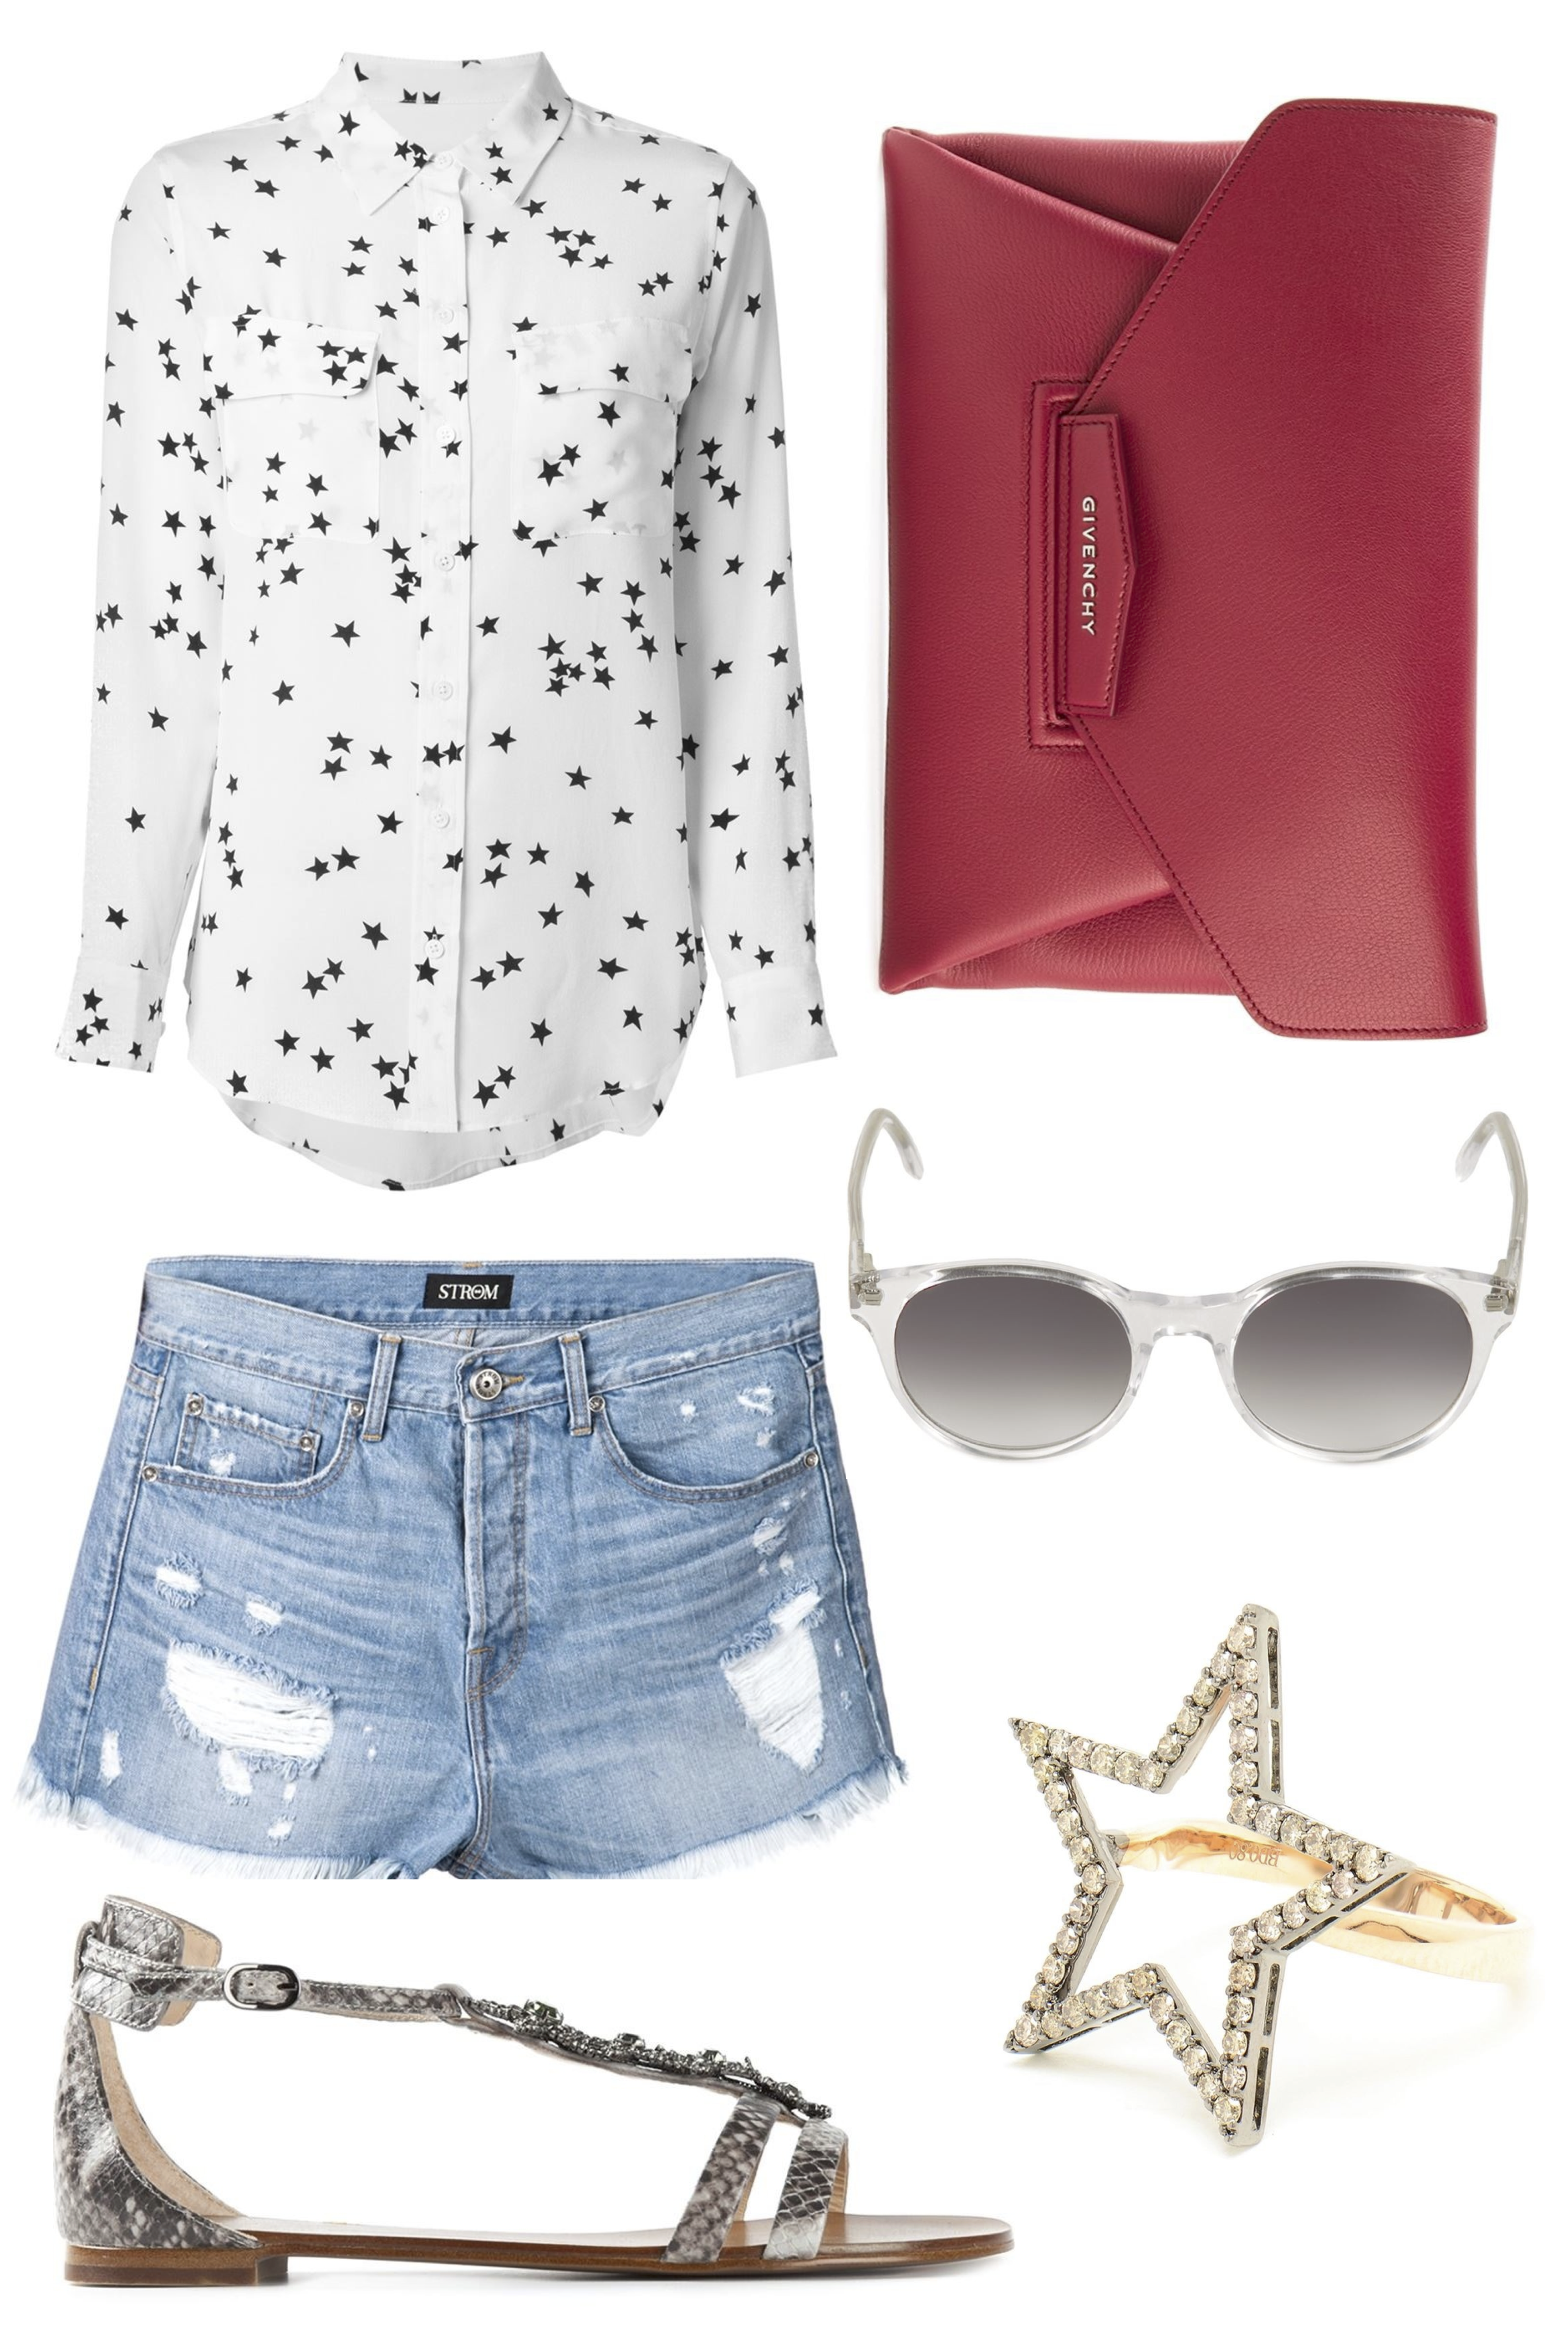 4th of july outfit ideas with denim cut off shorts